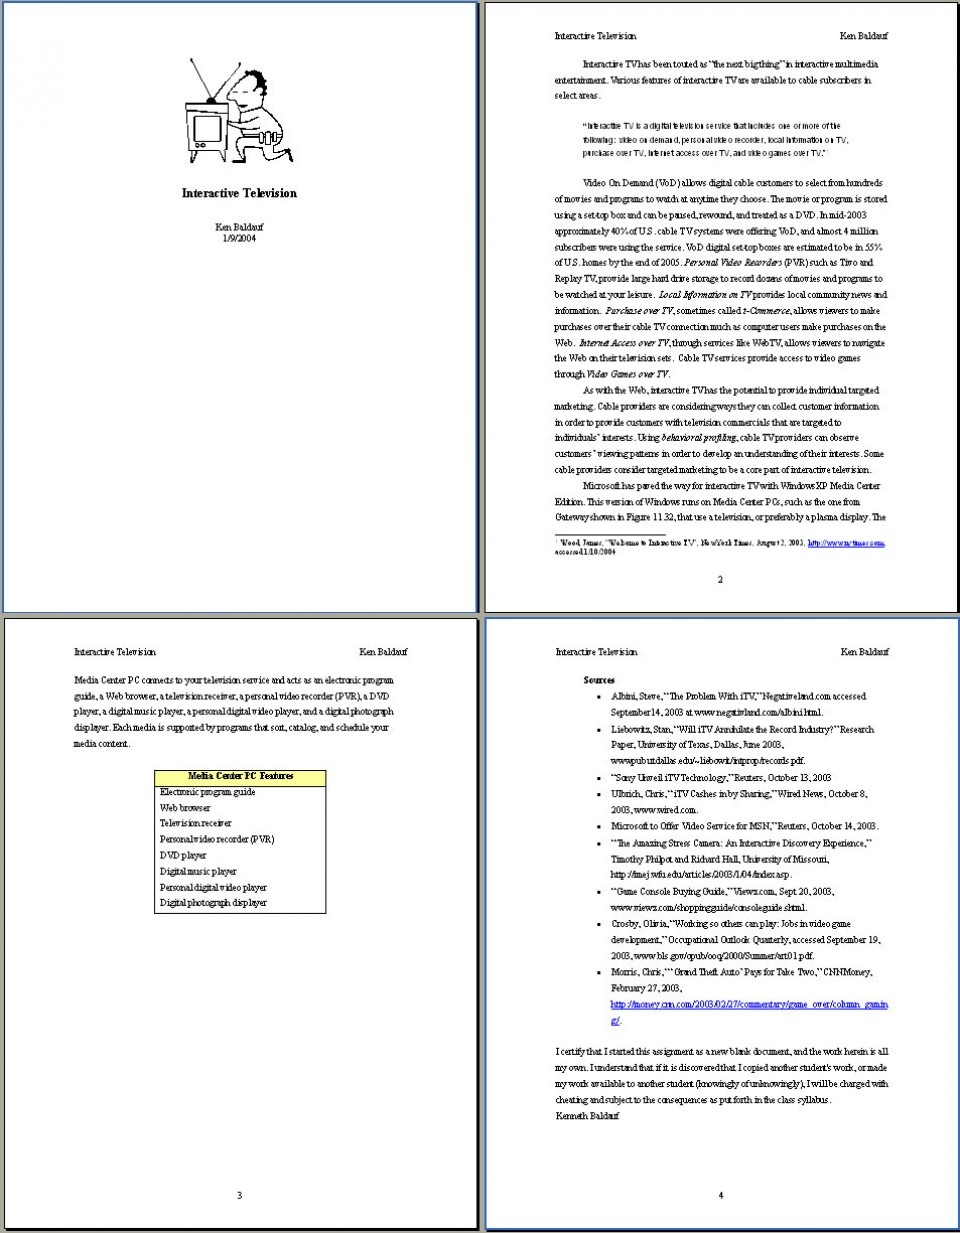 007 Research Paper Example Apa Format For Formidable Sample 2017 Psychology Style 960